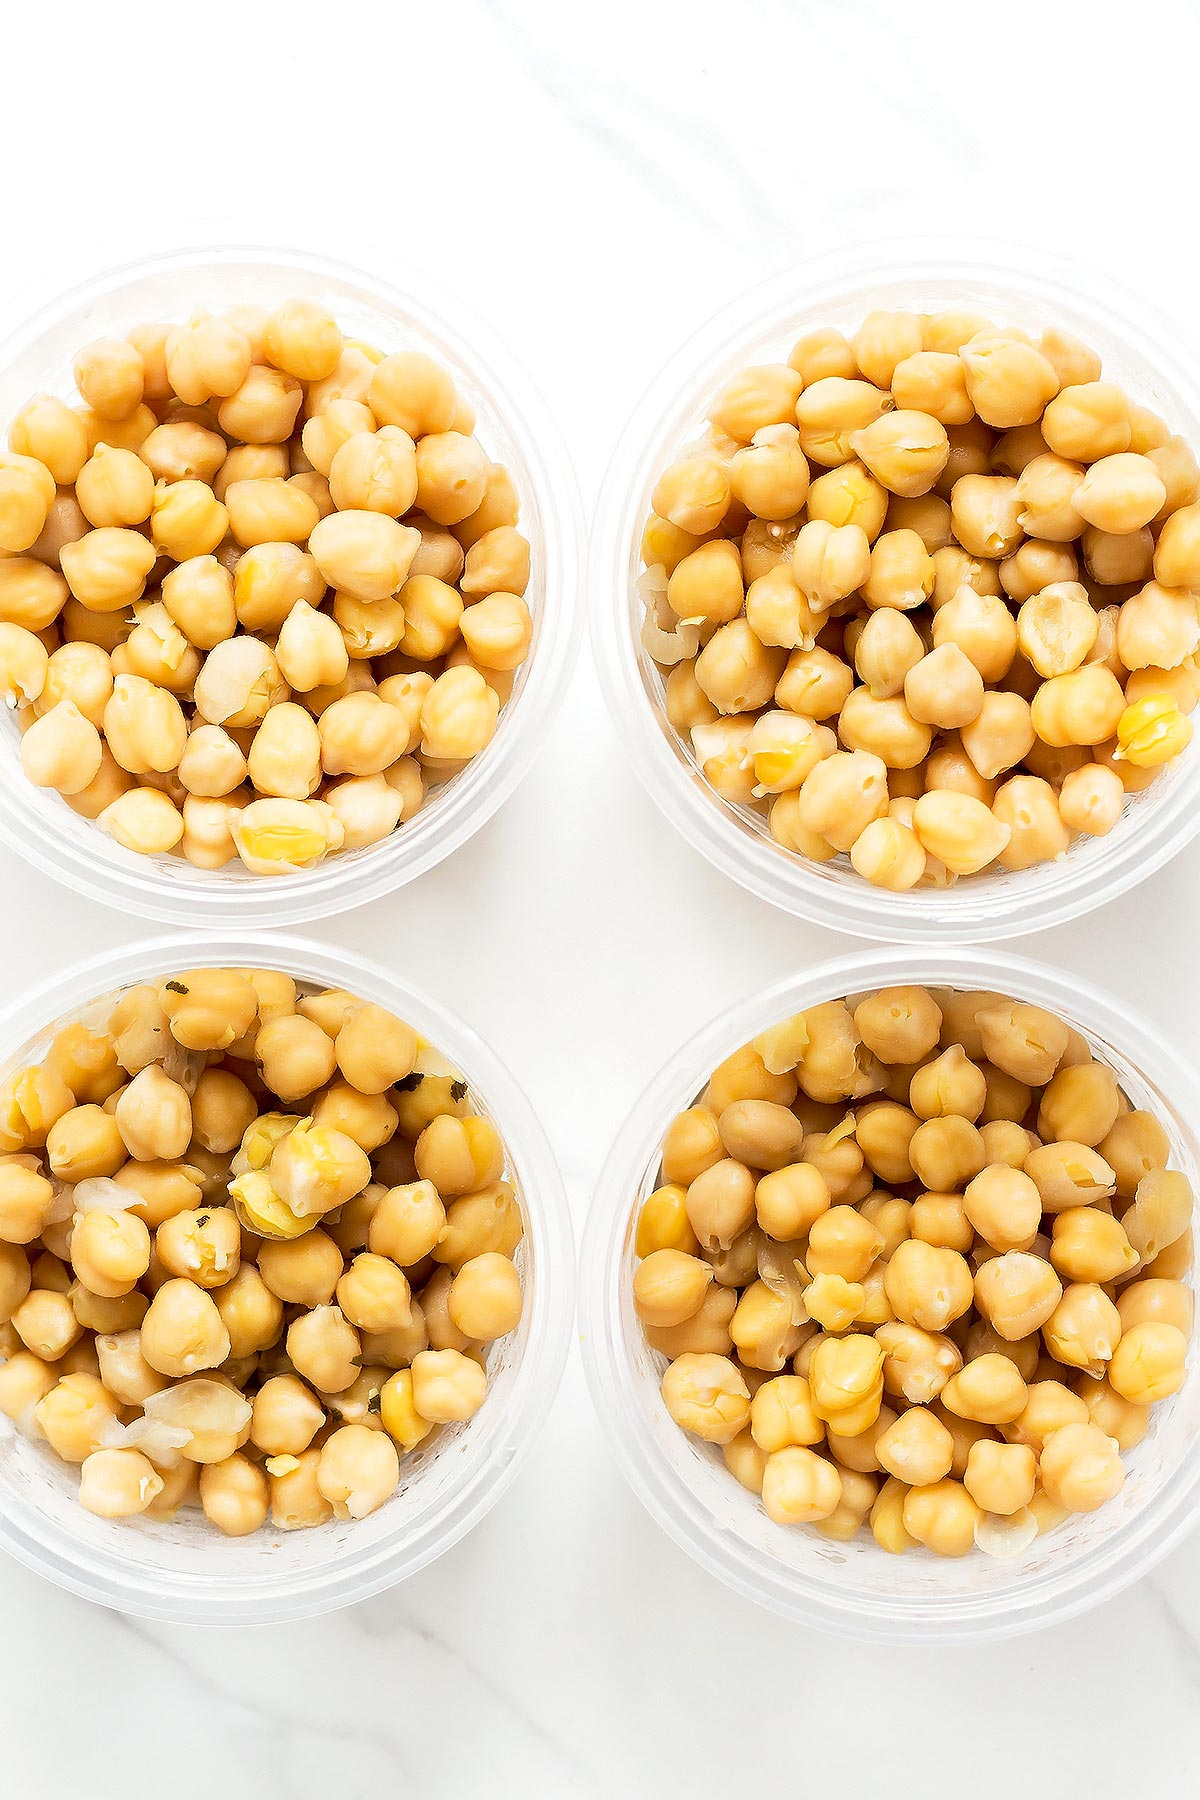 Cooked chickpeas in round storage containers